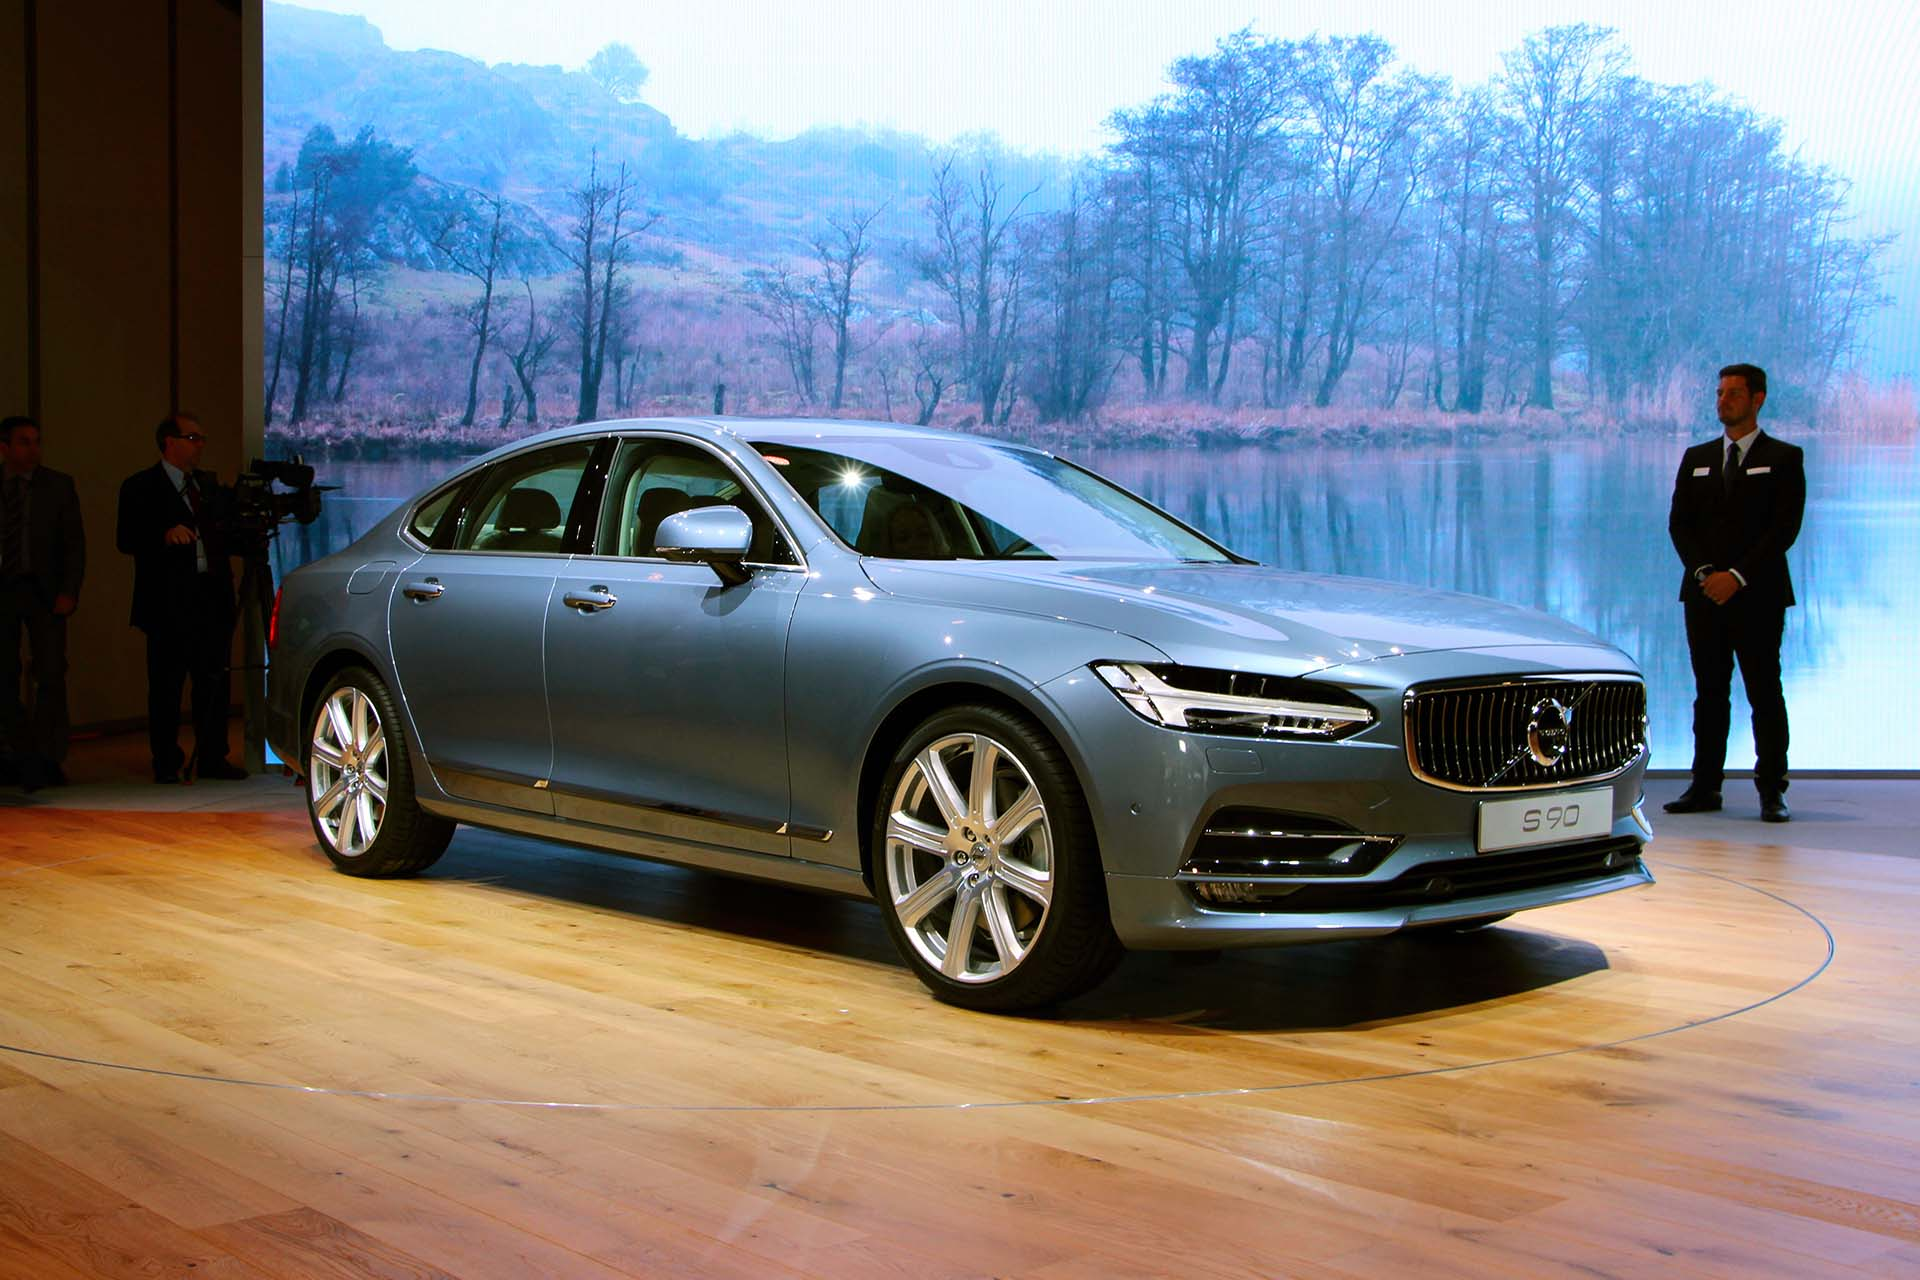 Volvo showed off the S90, with its signature Mjolnir headlights. It's a handsome look that works to convey an air of quiet confidence – the T8 hybrid manages 410 hp, so plenty of confidence on tap.